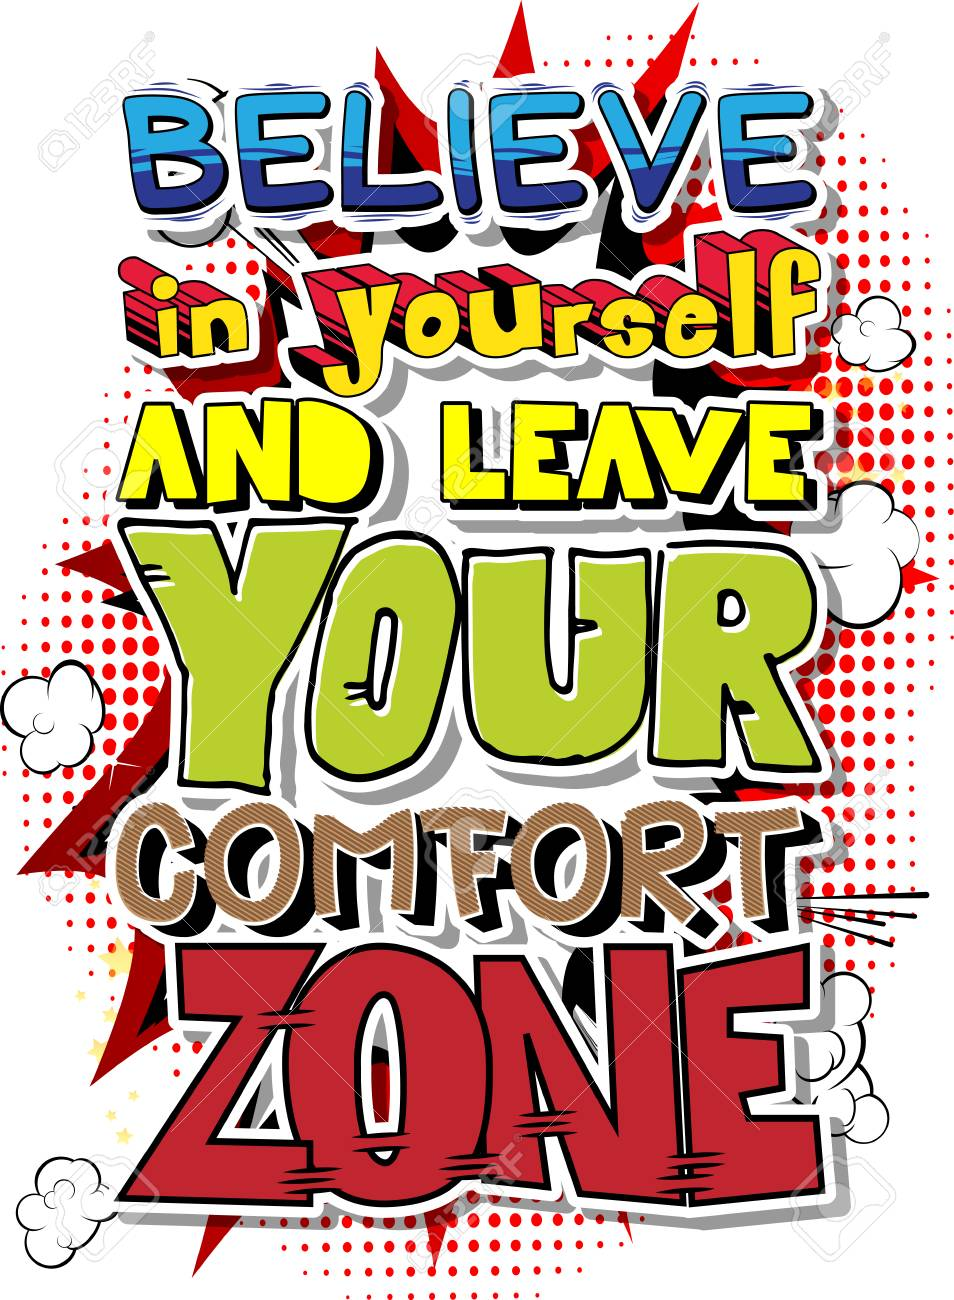 Believe in yourself and leave your comfort zone vector illustrated believe in yourself and leave your comfort zone vector illustrated comic book style design solutioingenieria Choice Image